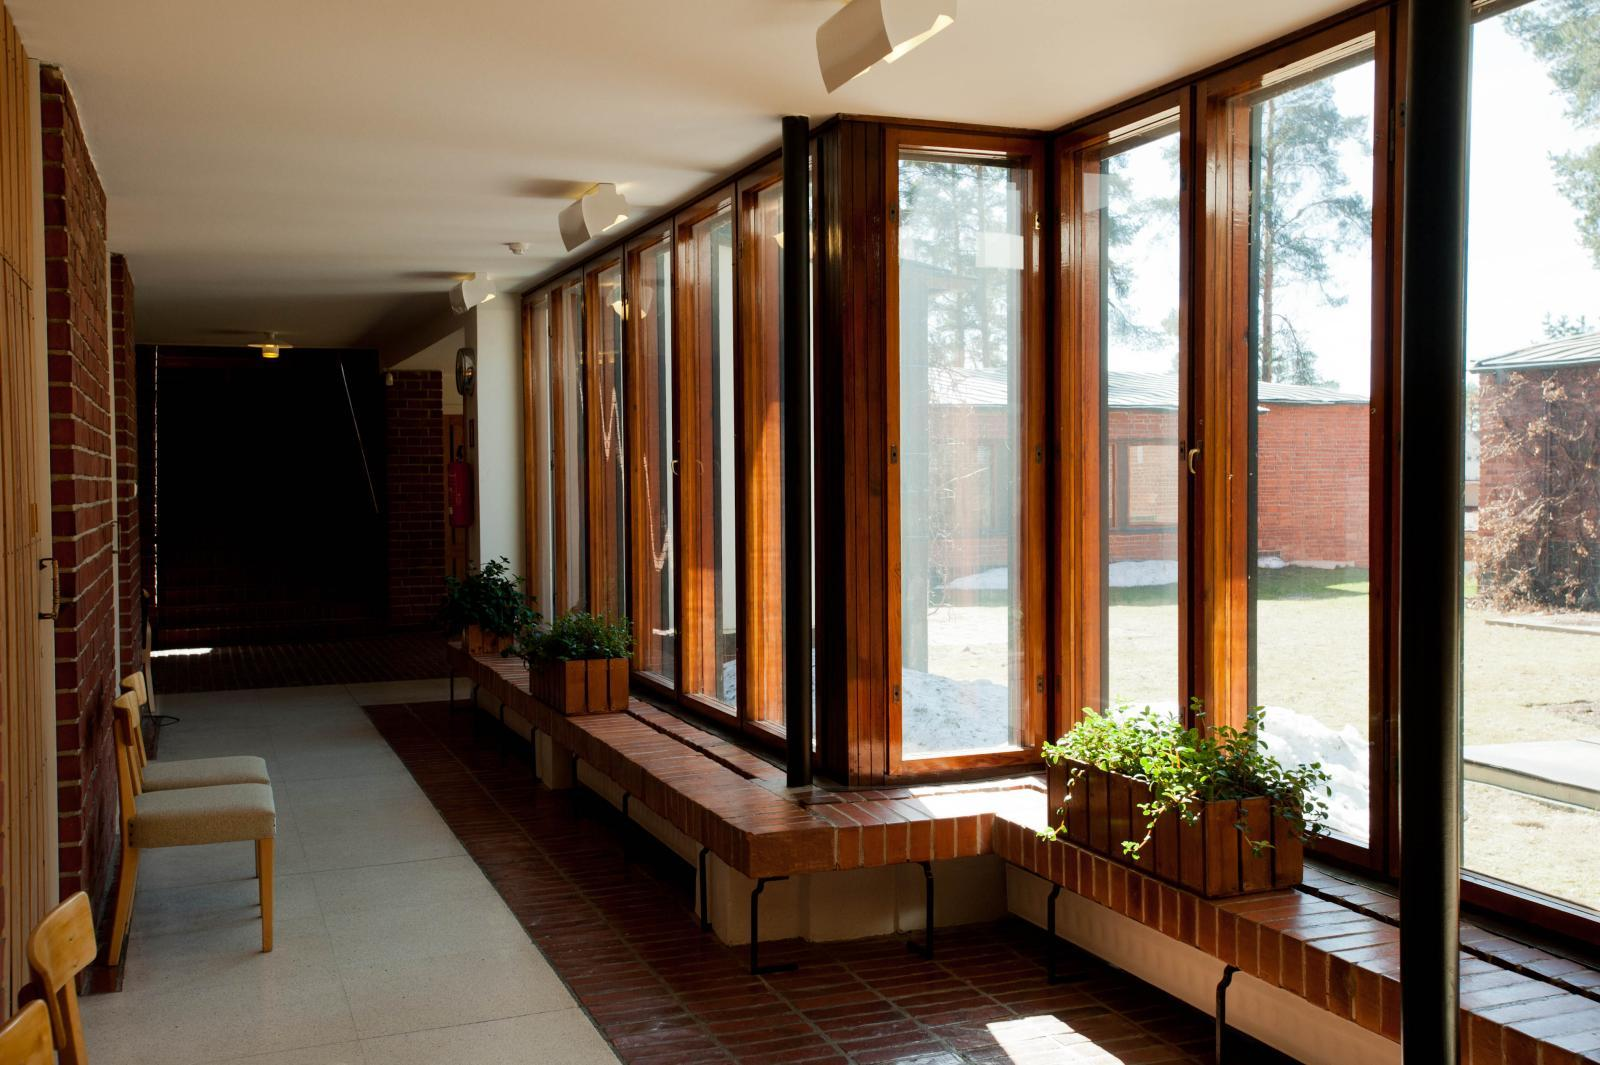 Gallery of ad classics s yn tsalo town hall alvar aalto 2 for Hall window design